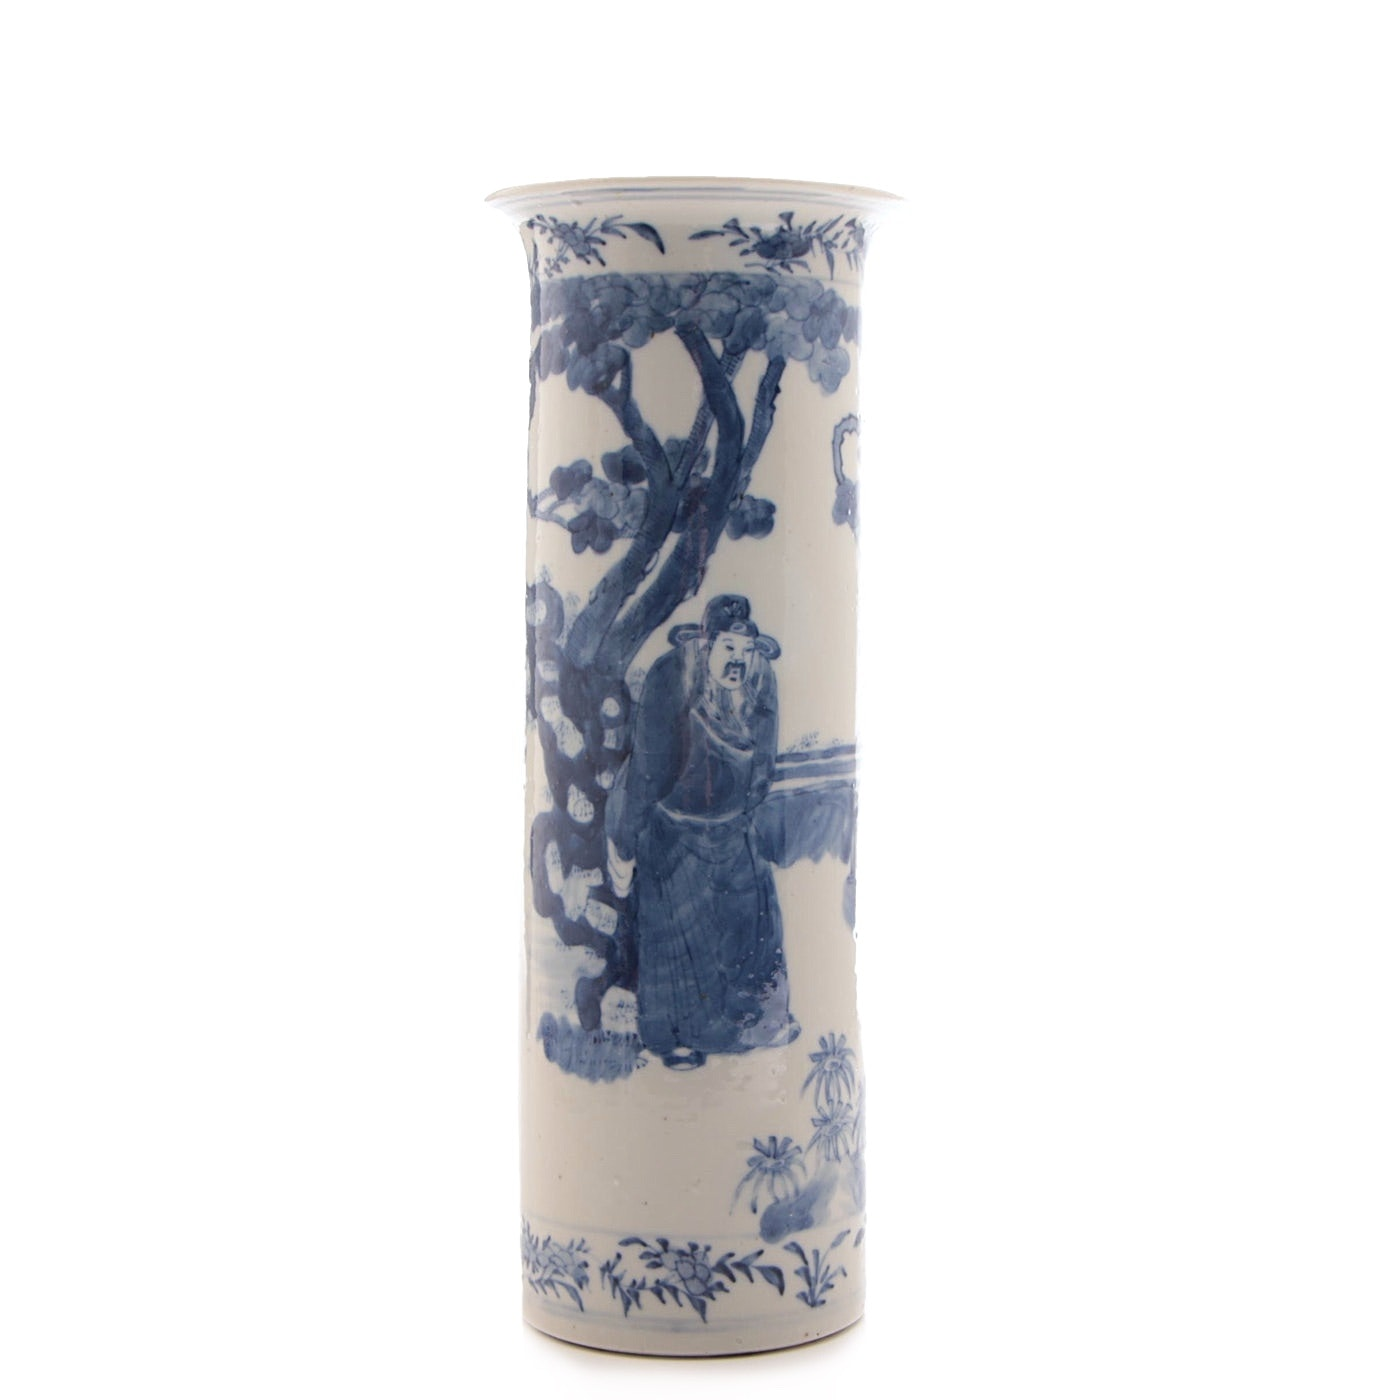 Chinese Blue and White Cylindrical Porcelain Vase, Qing Dynasty